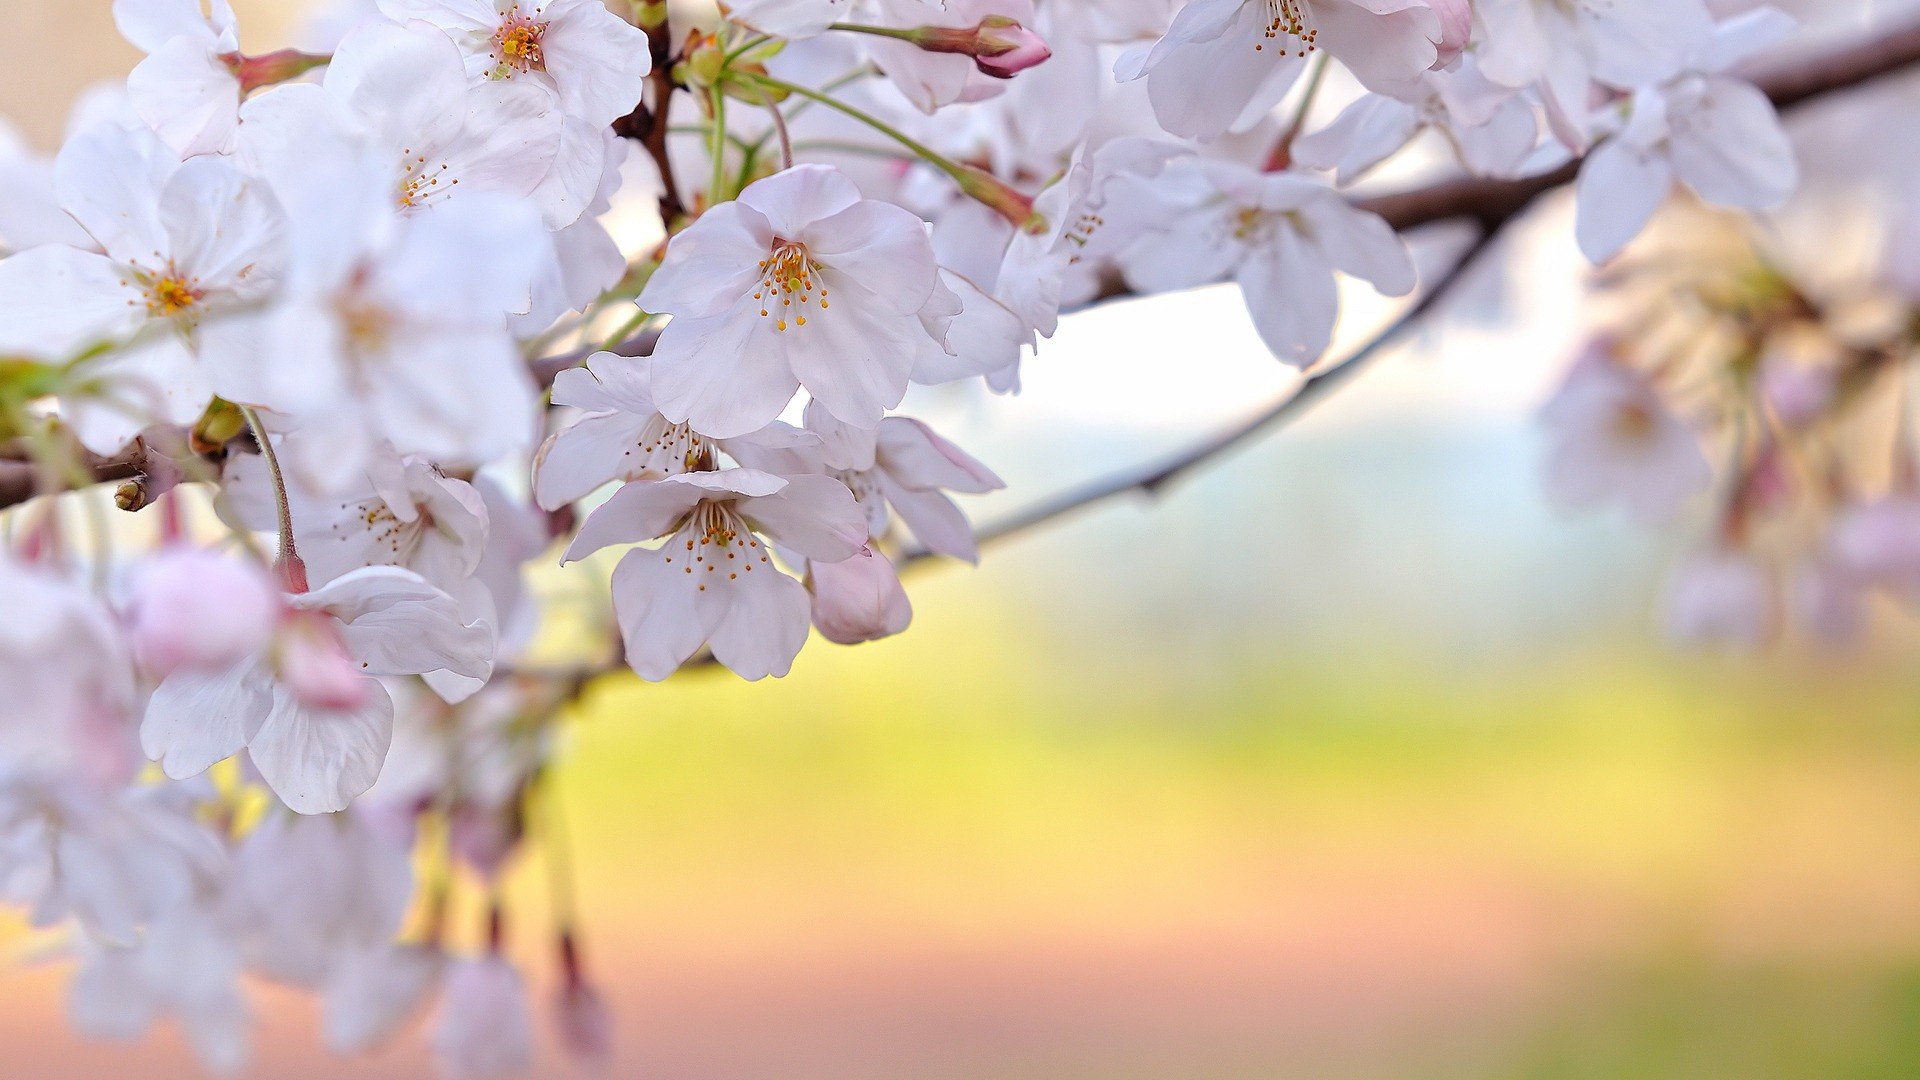 Spring Flowers Wallpapers High Resolution at Landscape Monodomo 1920x1080